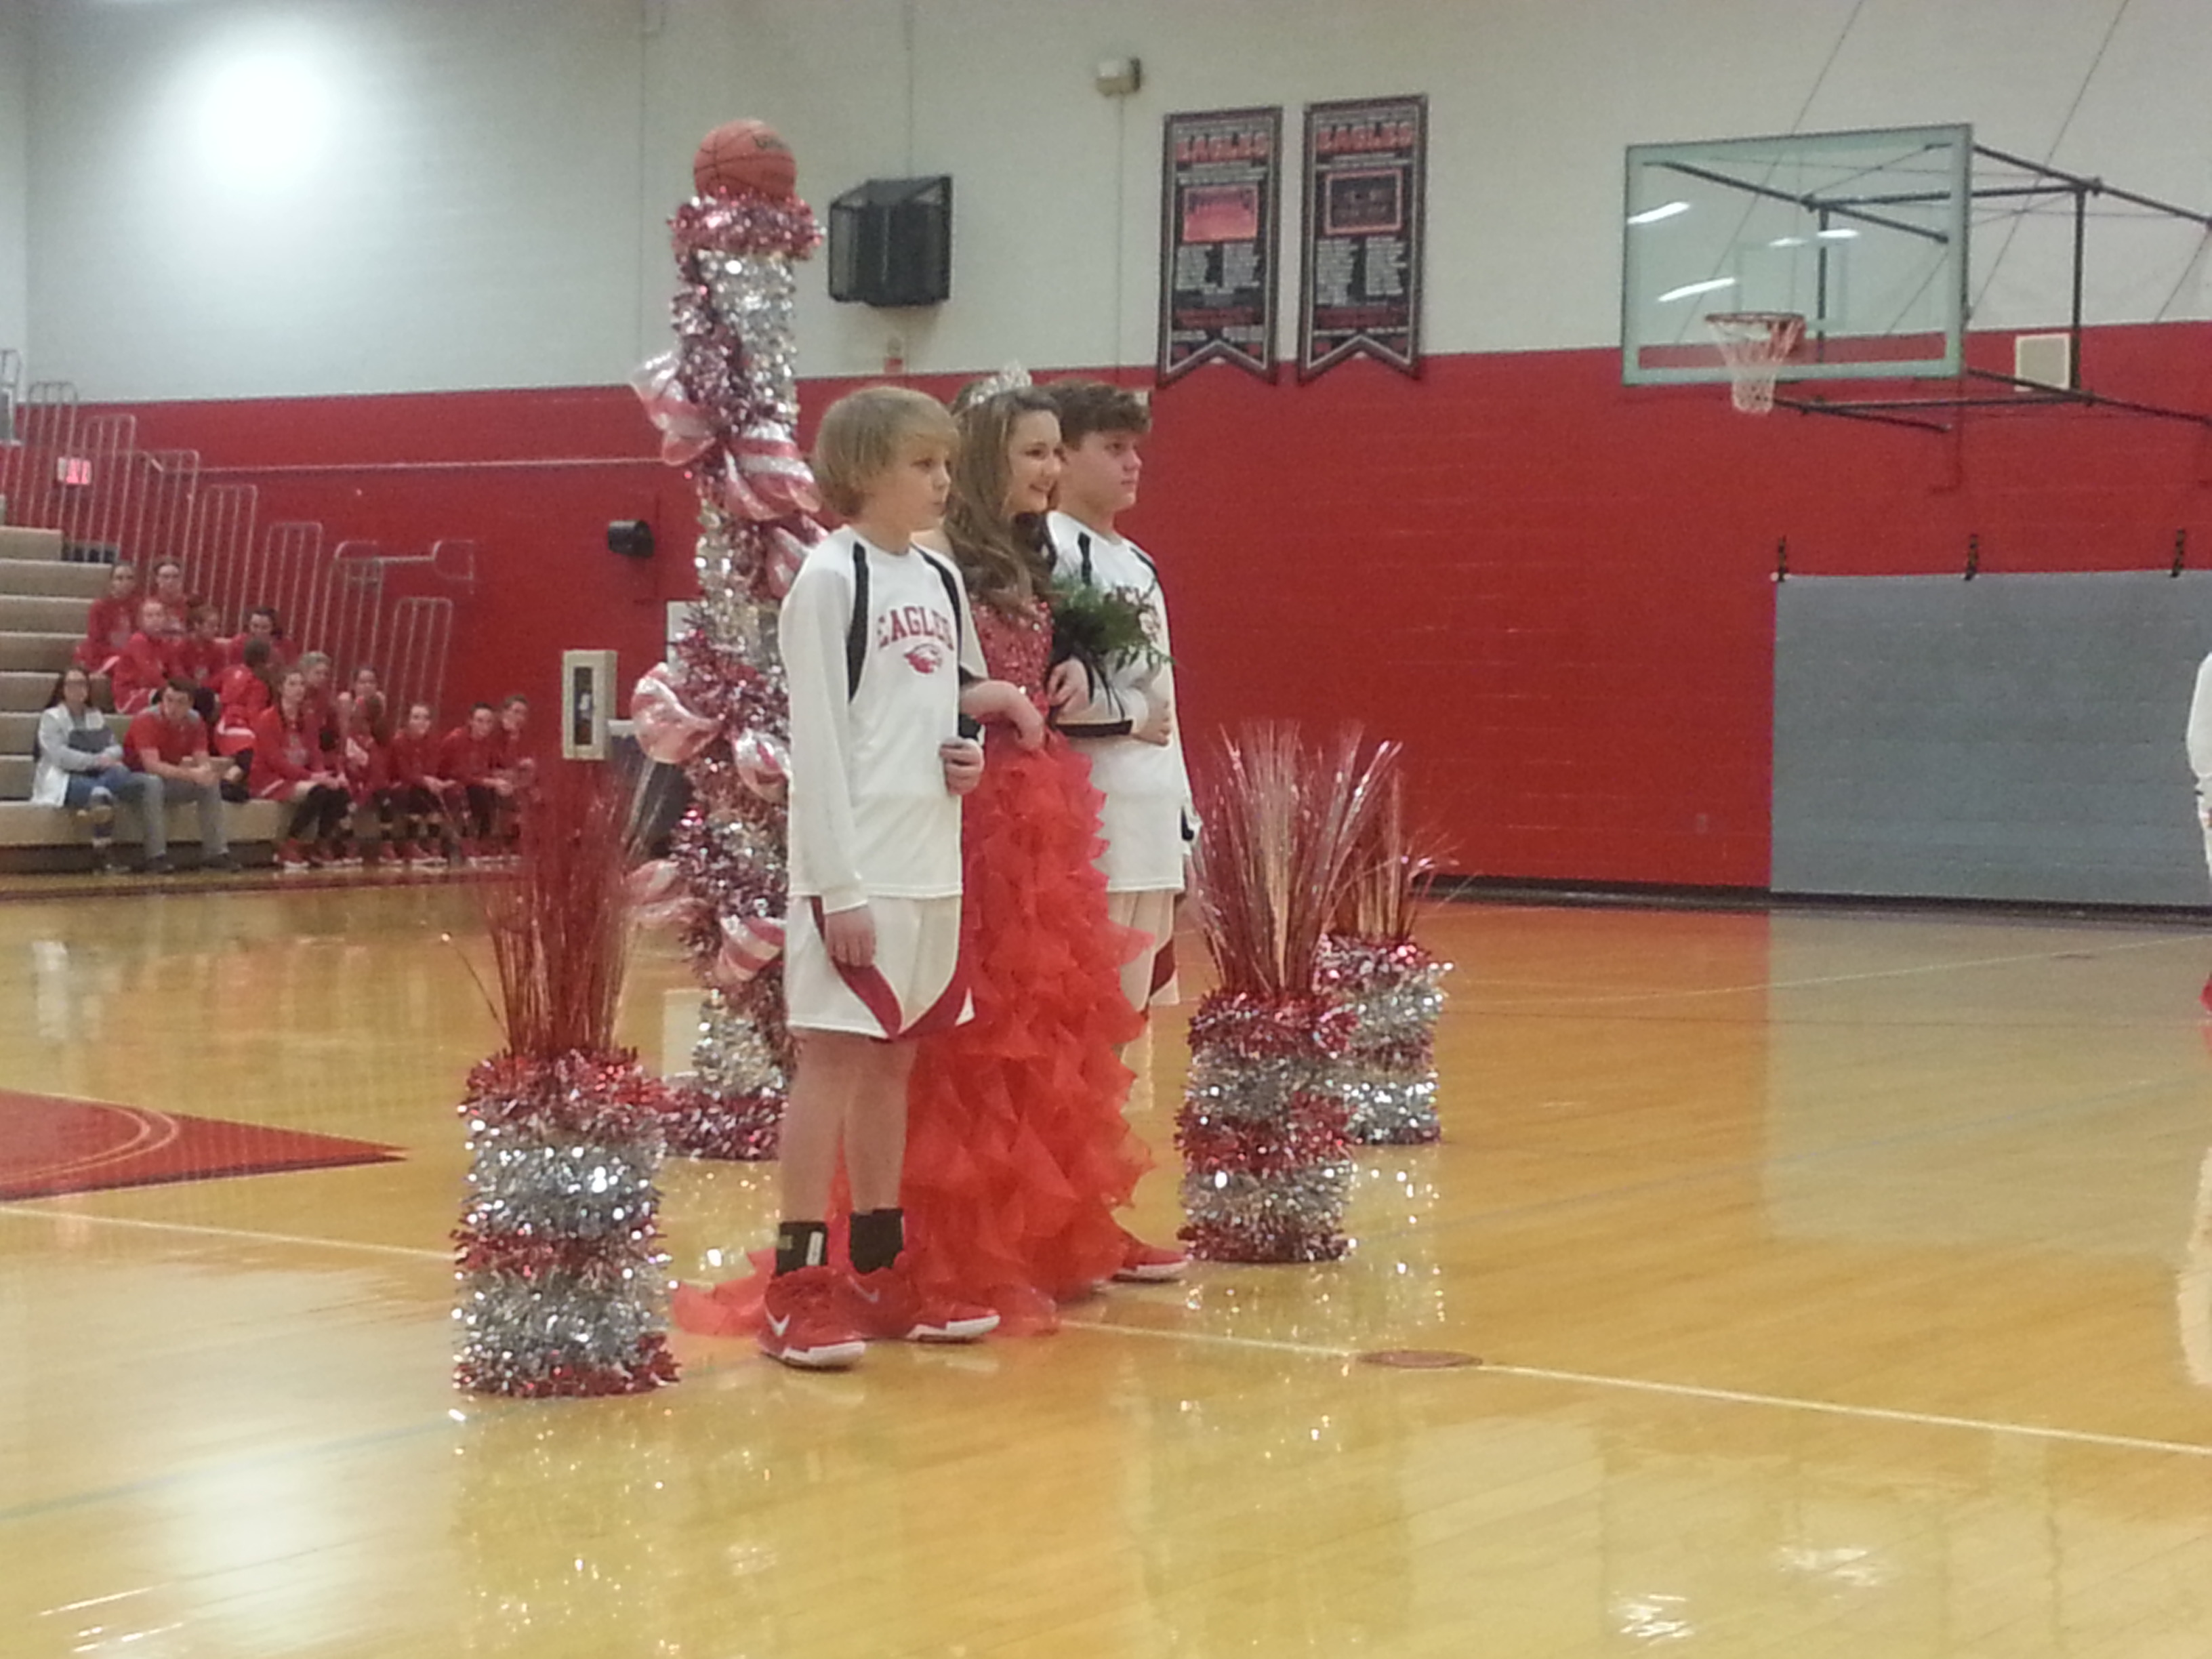 WMS Homecoming Queen ... Ms. Taylor Witzel is crowned before the basketball games begin.  (01/08)